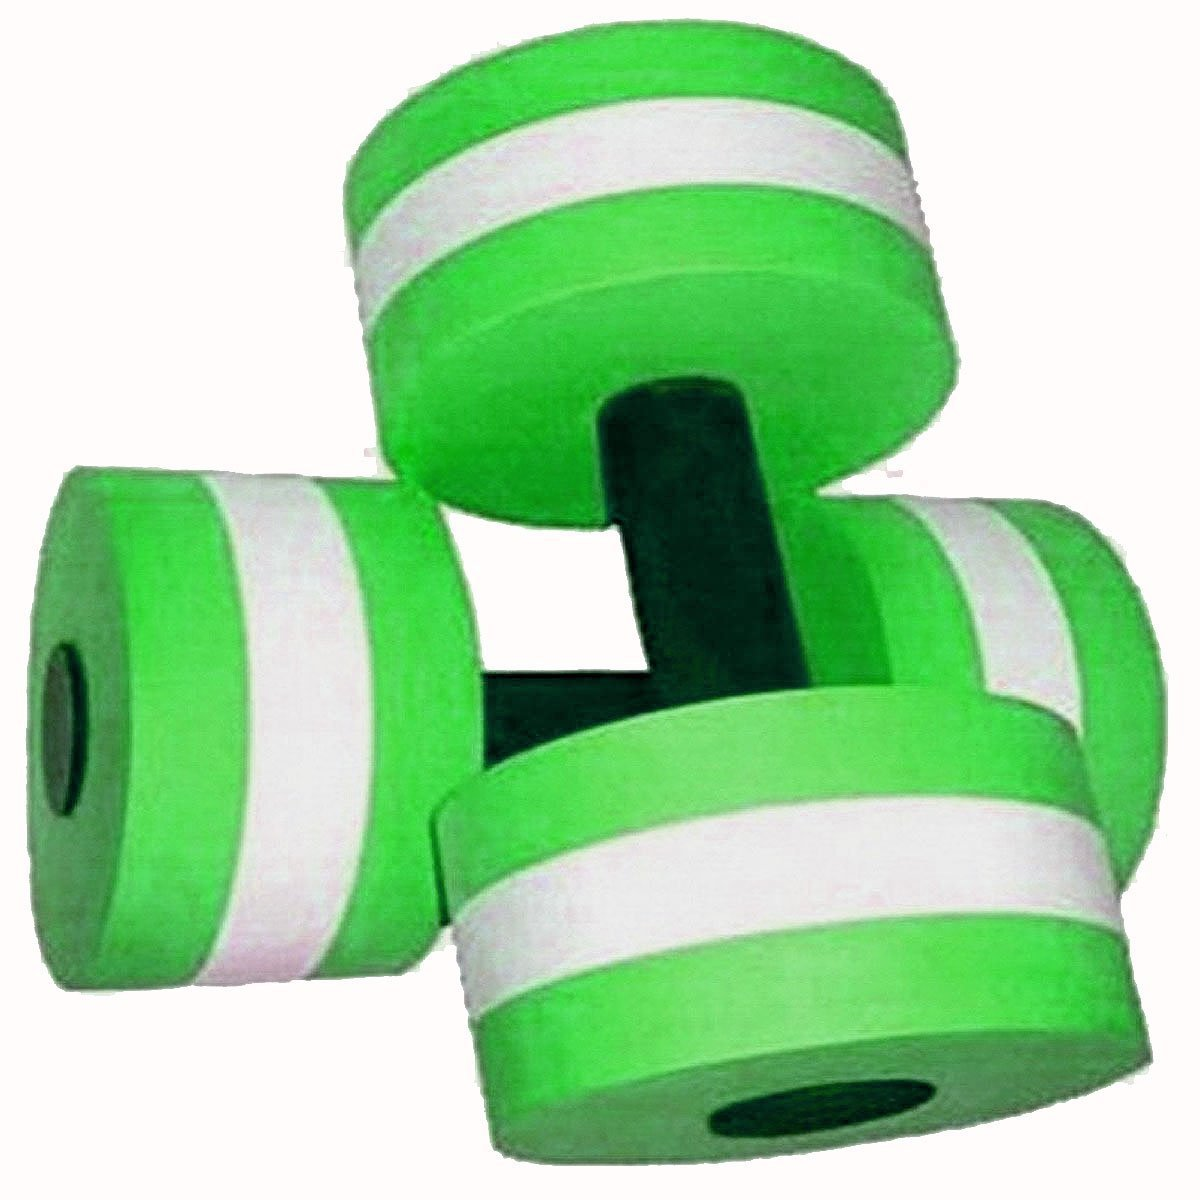 Davidamy's Gift Water Aerobic Exercise Foam Dumbells Pool Resistance 1 Pair, Water Fitness Exercises Equipment for Weight Loss Green davidamy' s gift